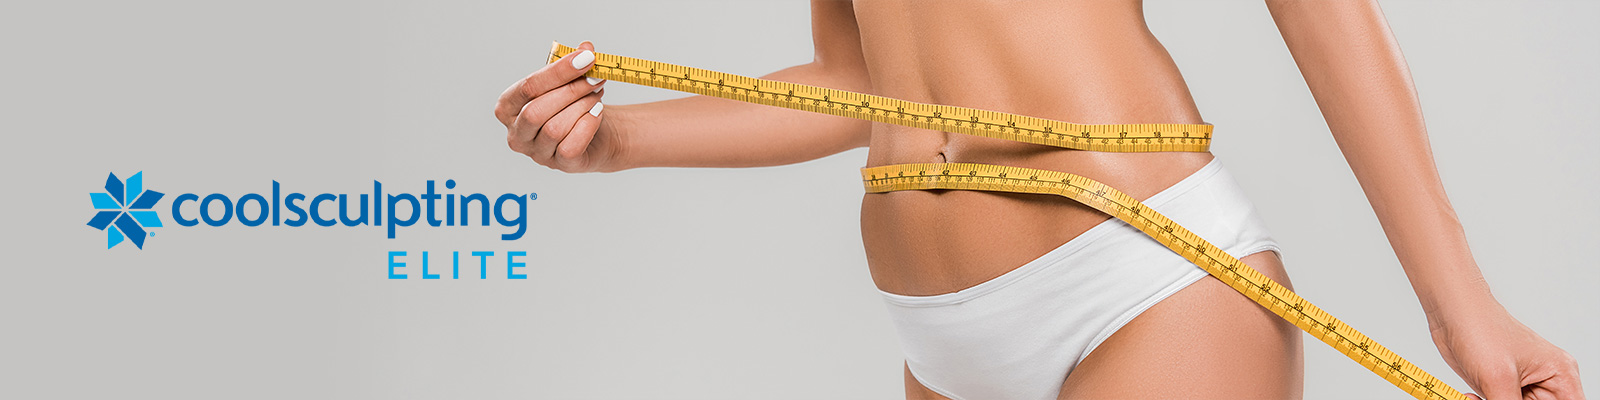 Chagrin Falls, Ohio provider offers the new CoolSculpting Elite system for fat reduction